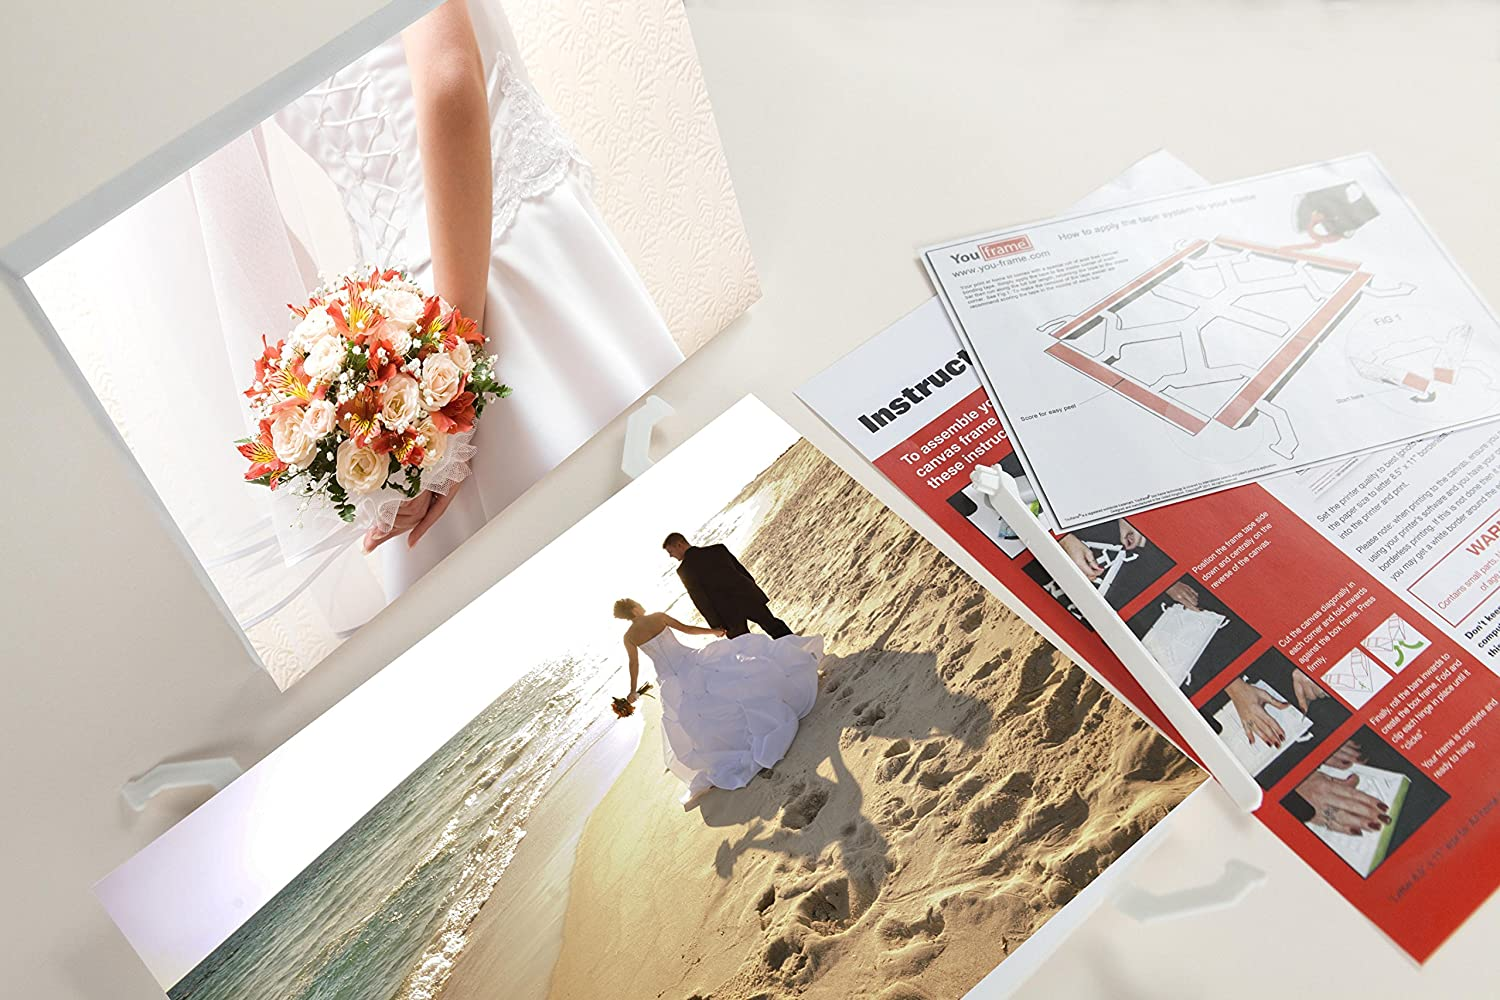 You Frame Photos To Canvas Print And Canvas Your Own Photos Fun Easy To Use Triple Pack Amazon Co Uk Office Products